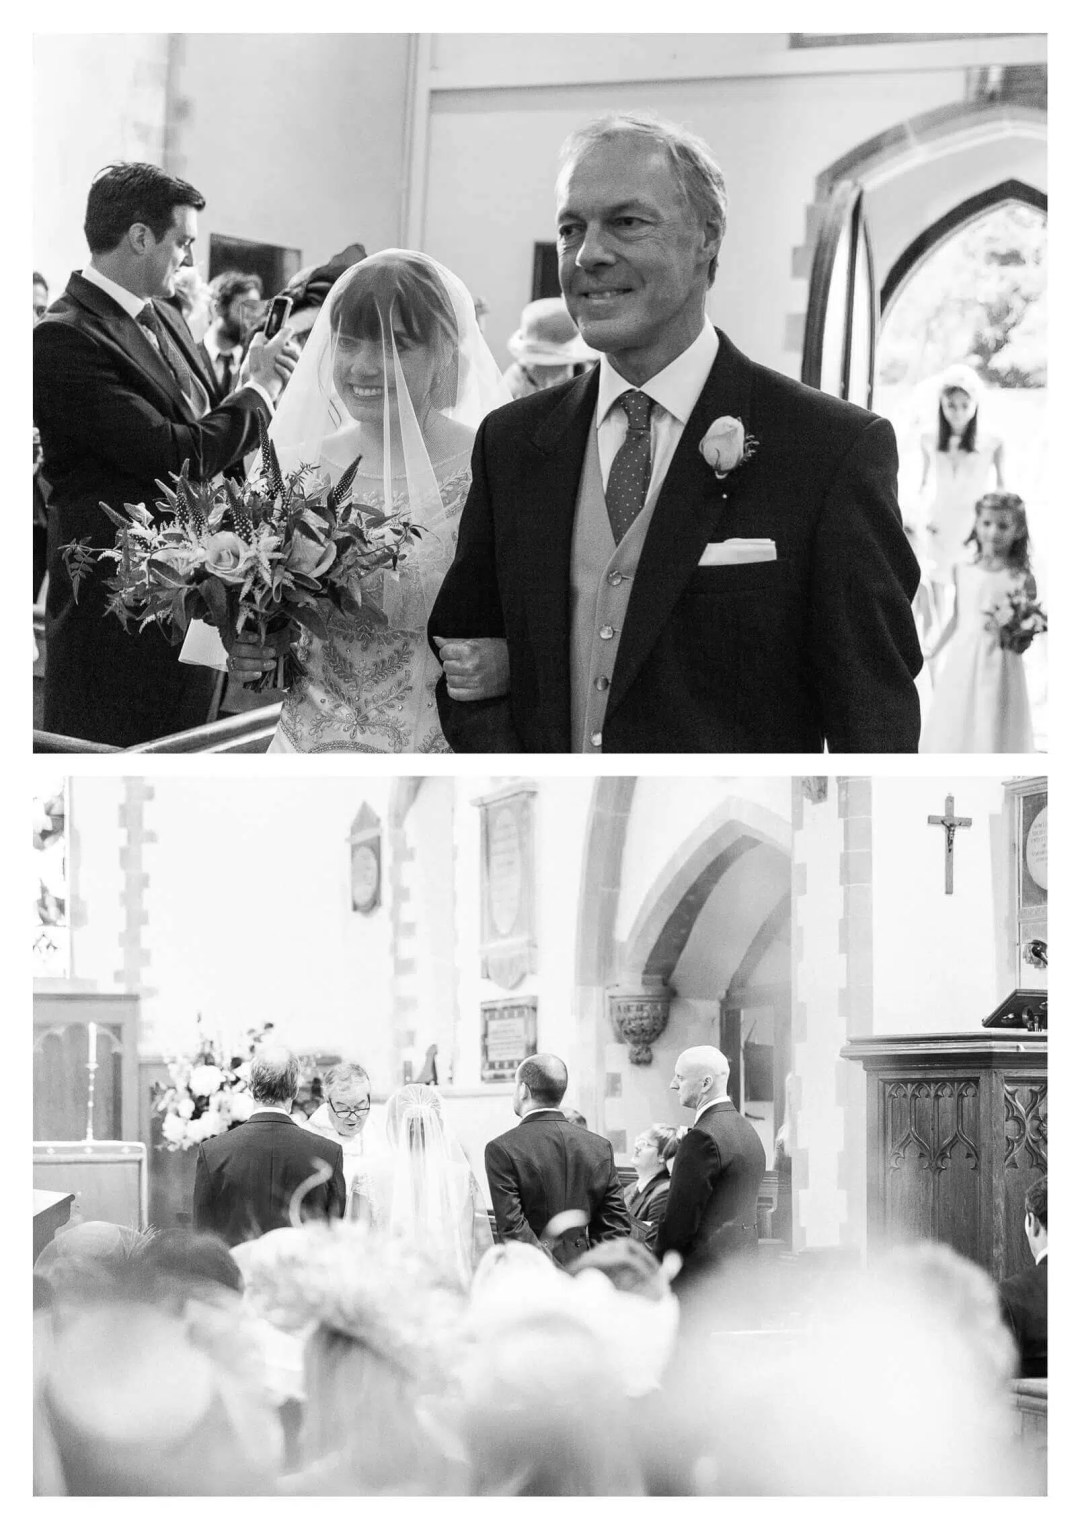 St James Church wedding ceremony in Stedham | West Sussex Wedding Photographer